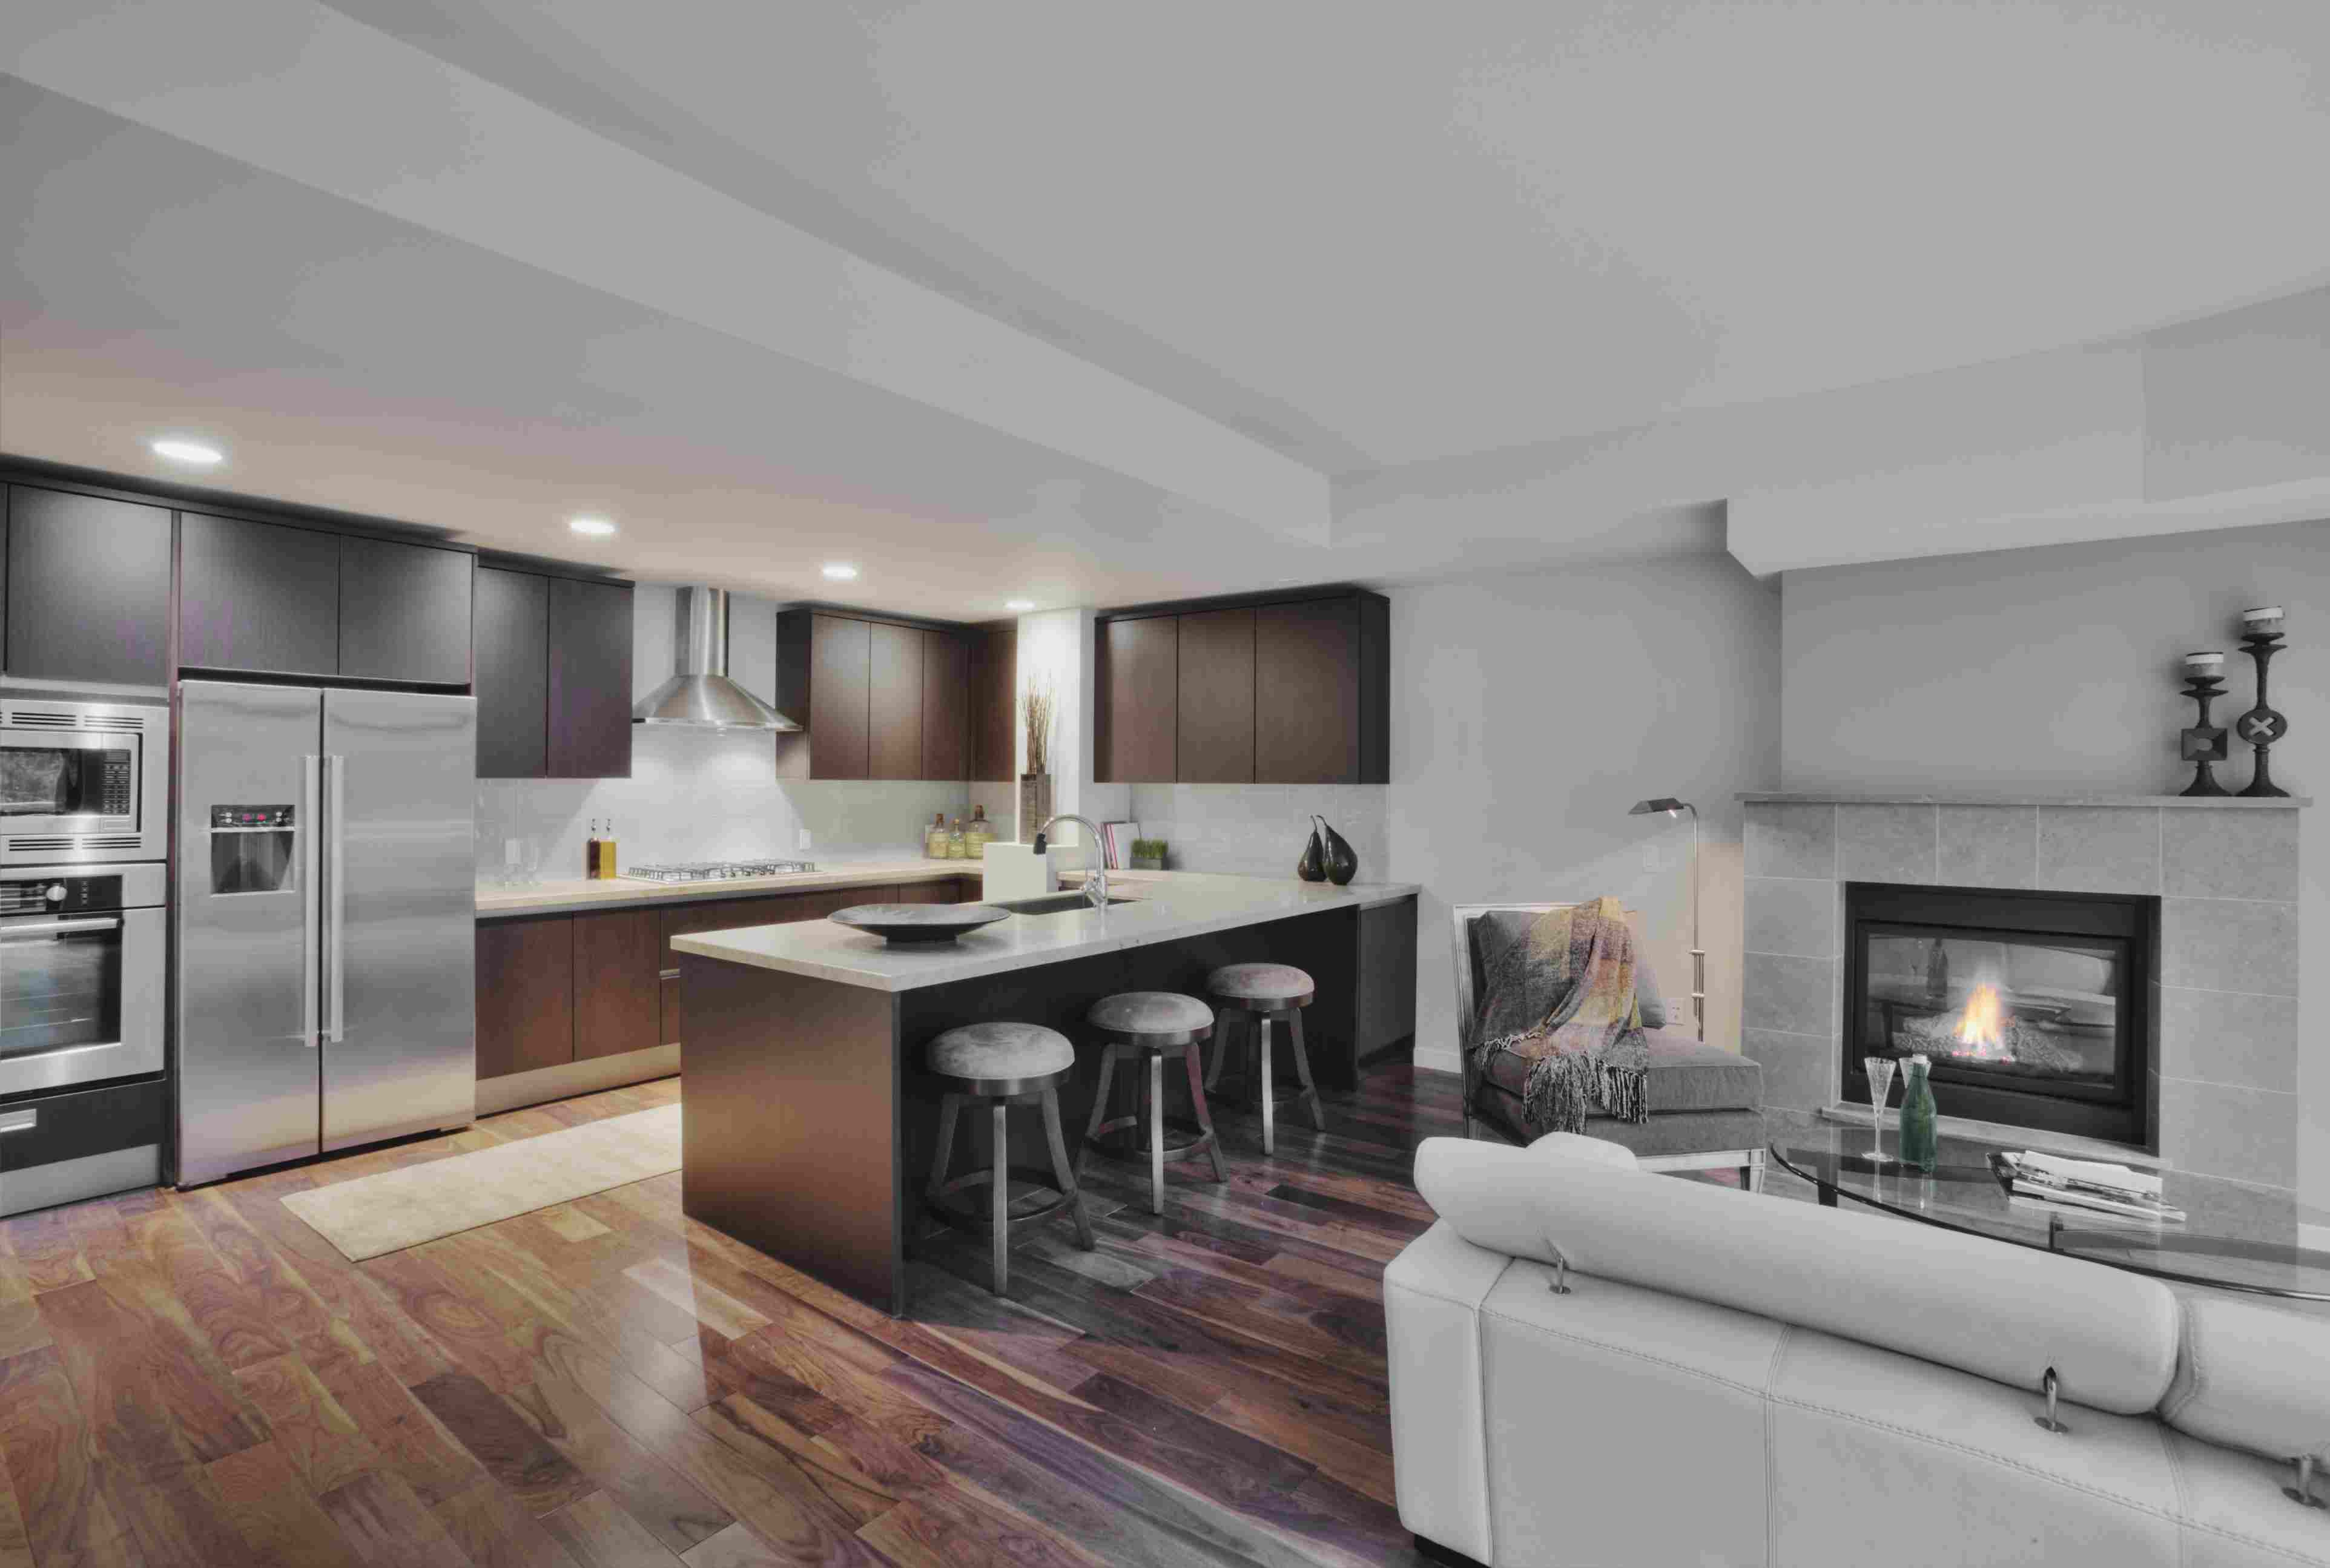 wide plank grey hardwood flooring of gorgeous kitchens with wooden flooring regarding open plan kitchen with wood floor 188074734 spaces images 56a4a1673df78cf77283536c